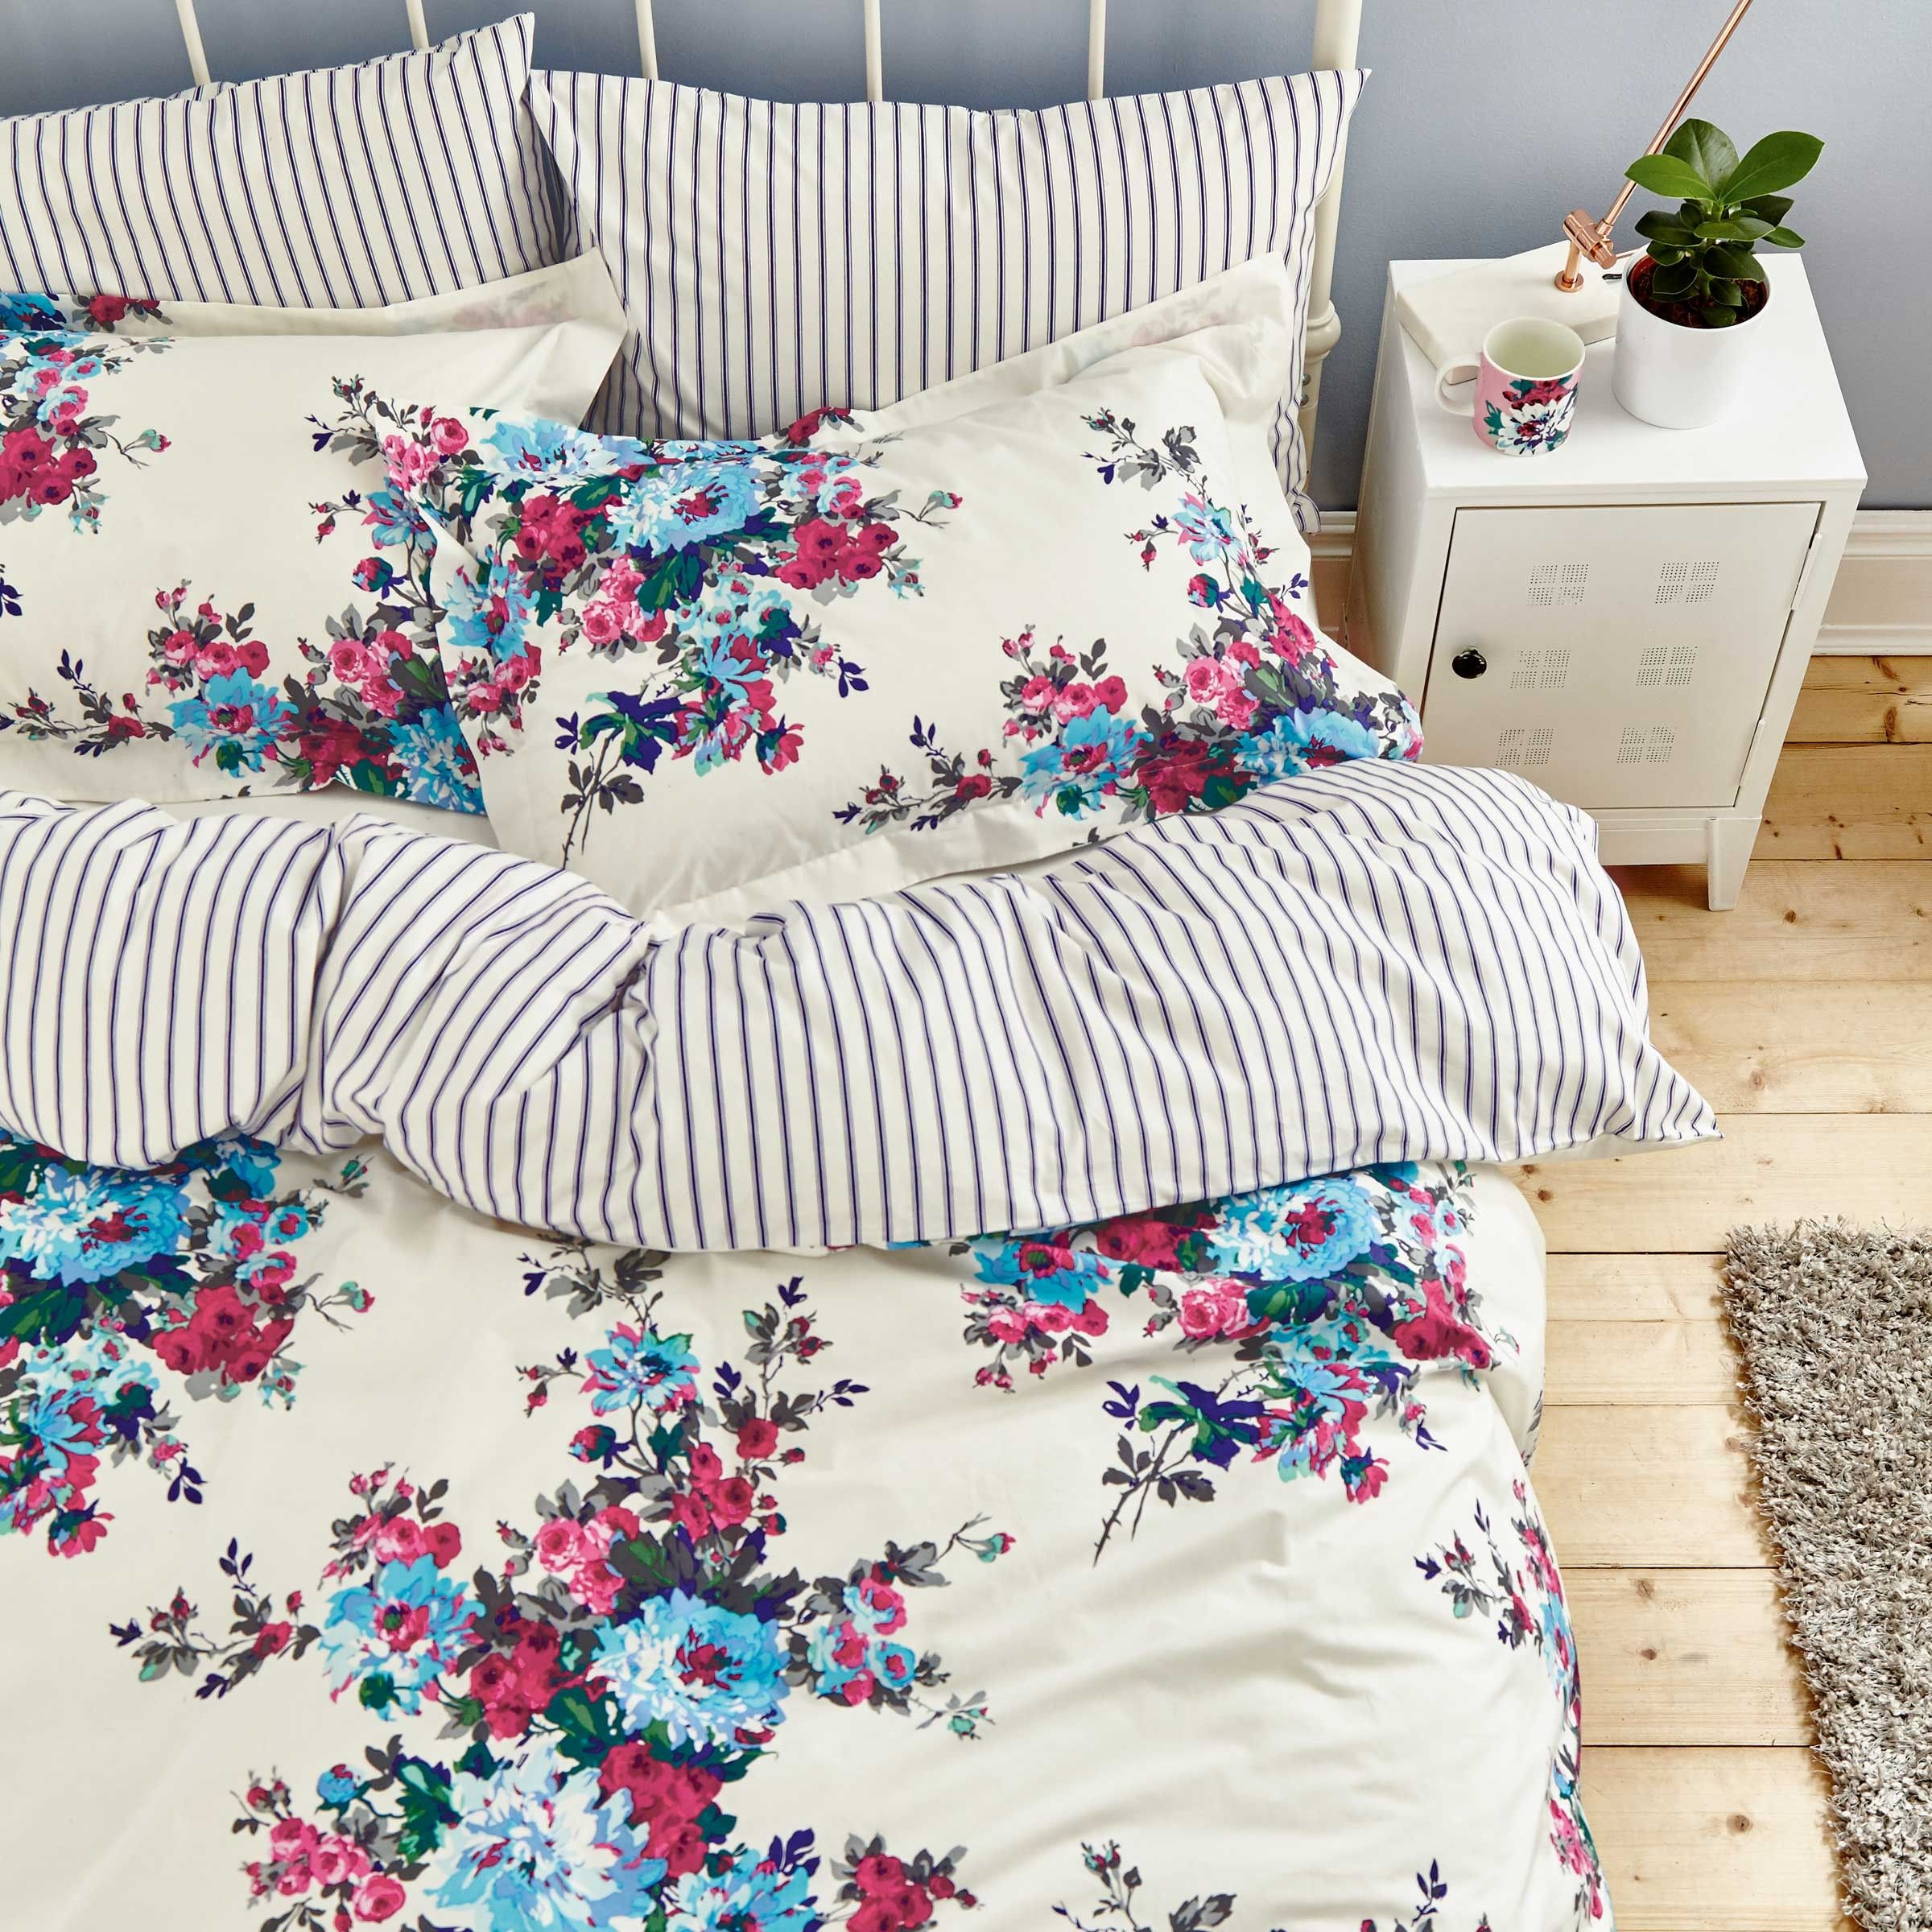 Floral Bedspreads And Comforters.Pin On Bedroom